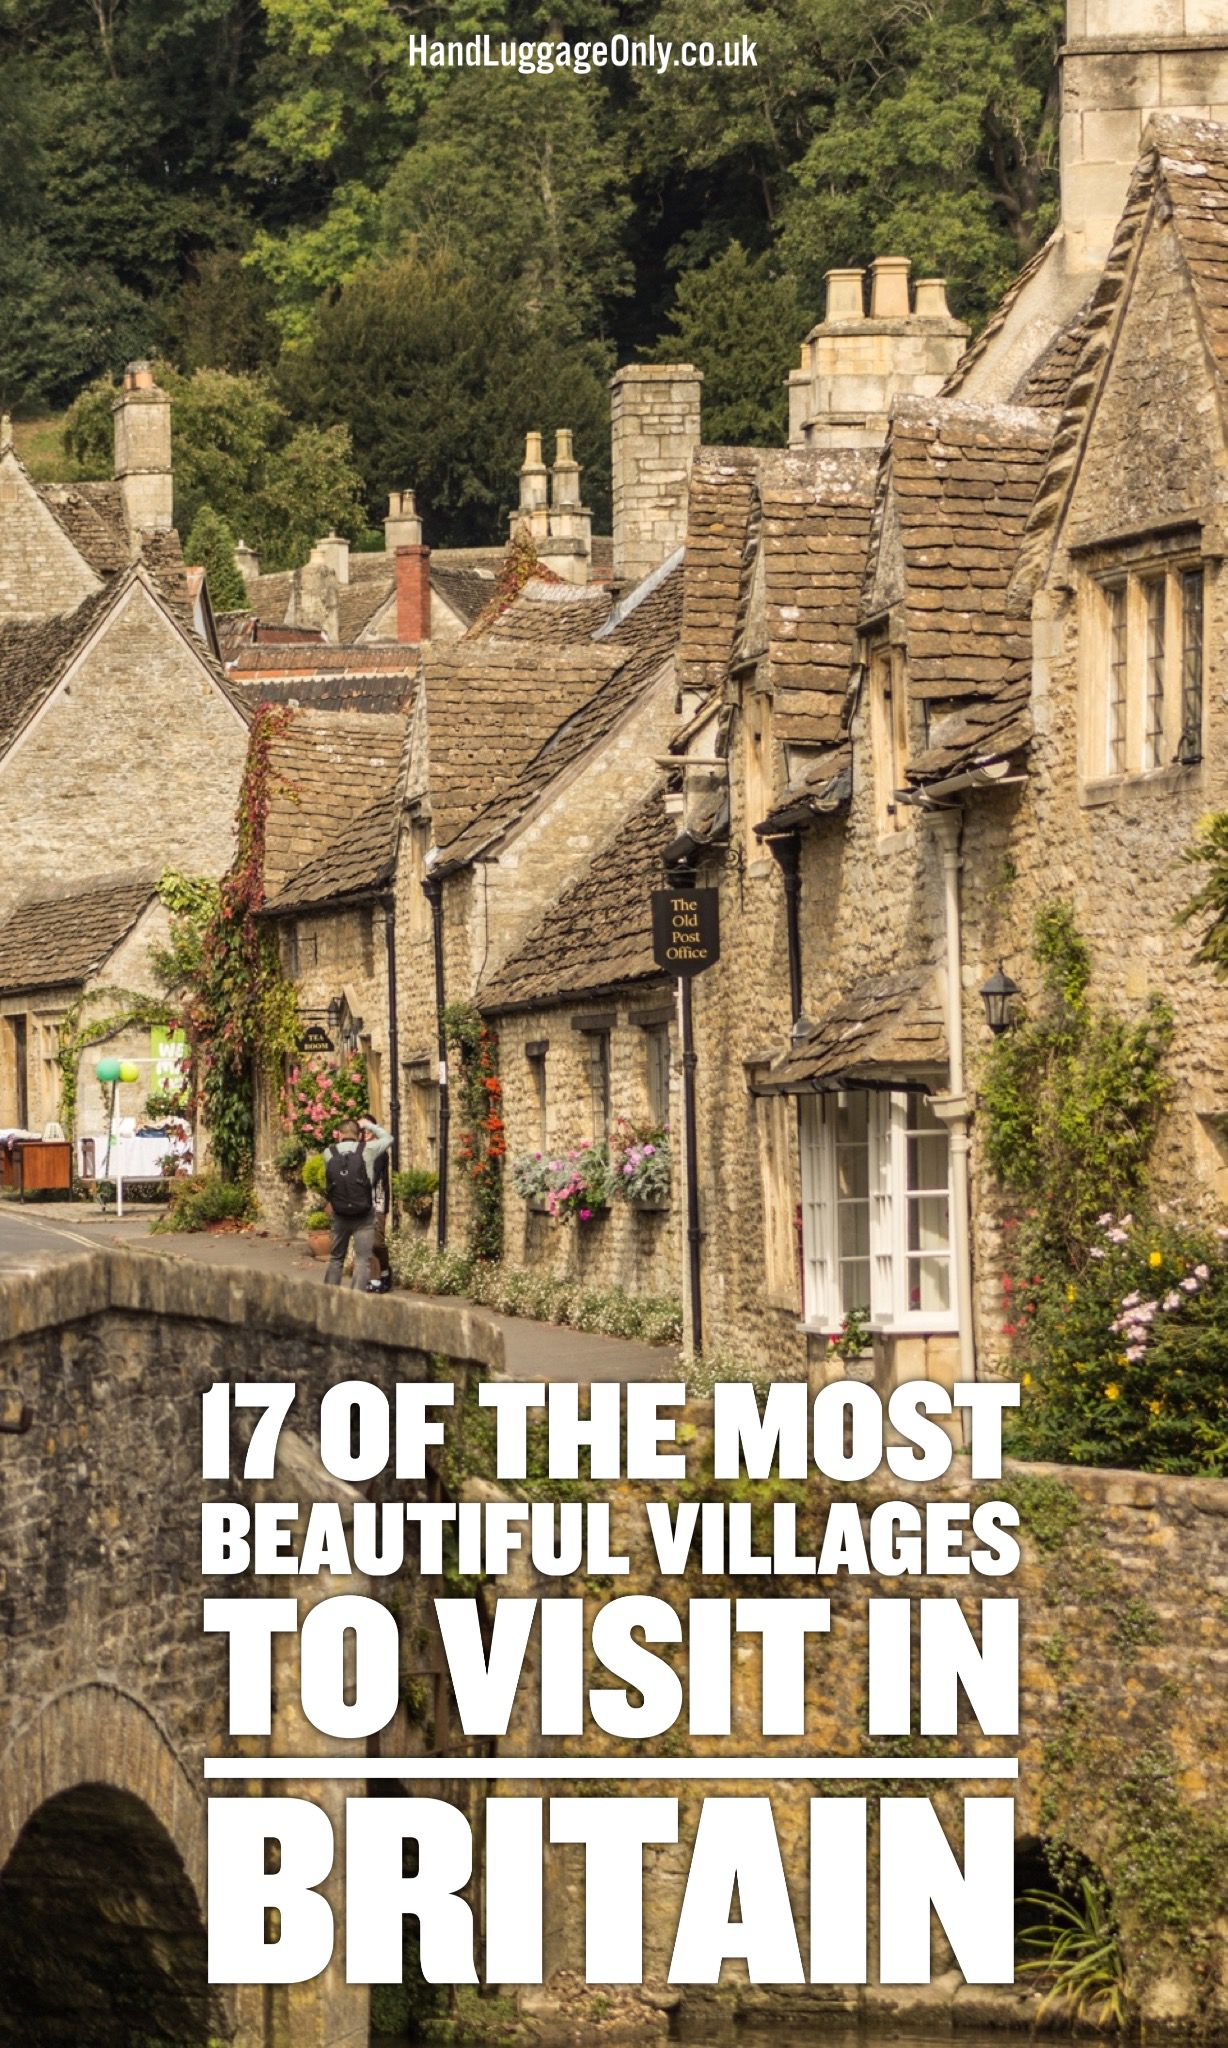 17 Of The Most Beautiful Villages To Visit In Britain!